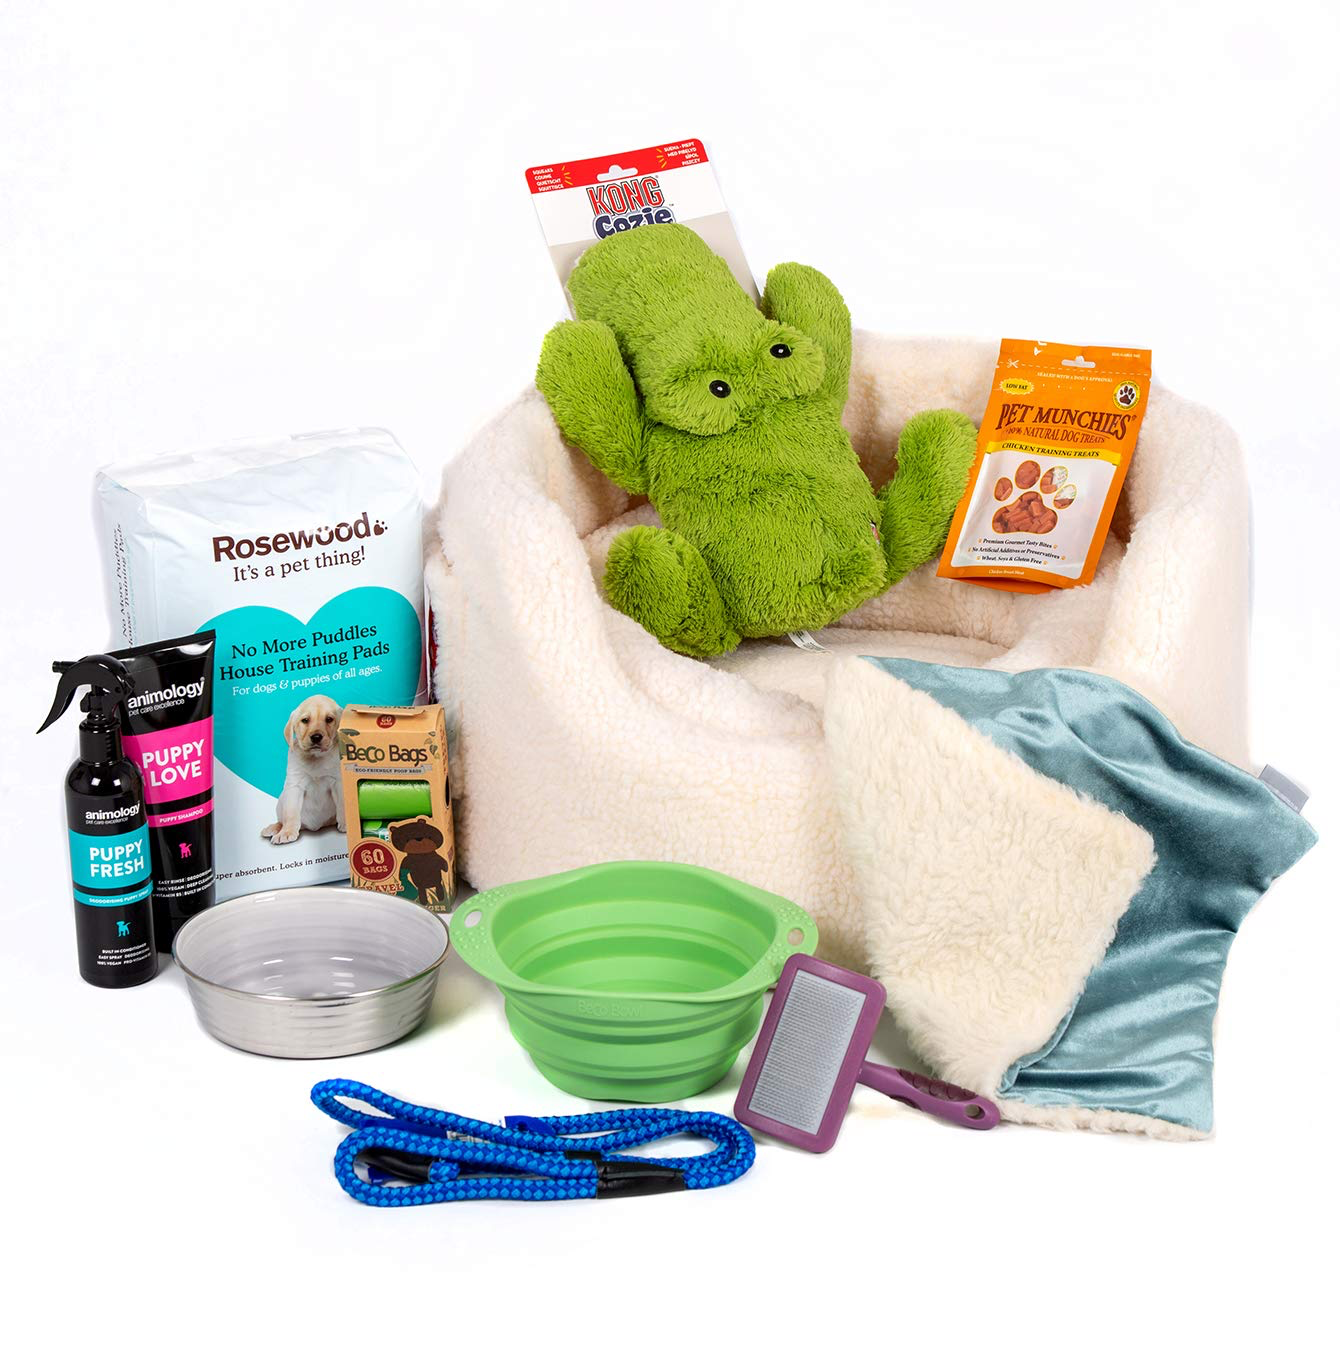 Get everything you will need for your new puppy all in one